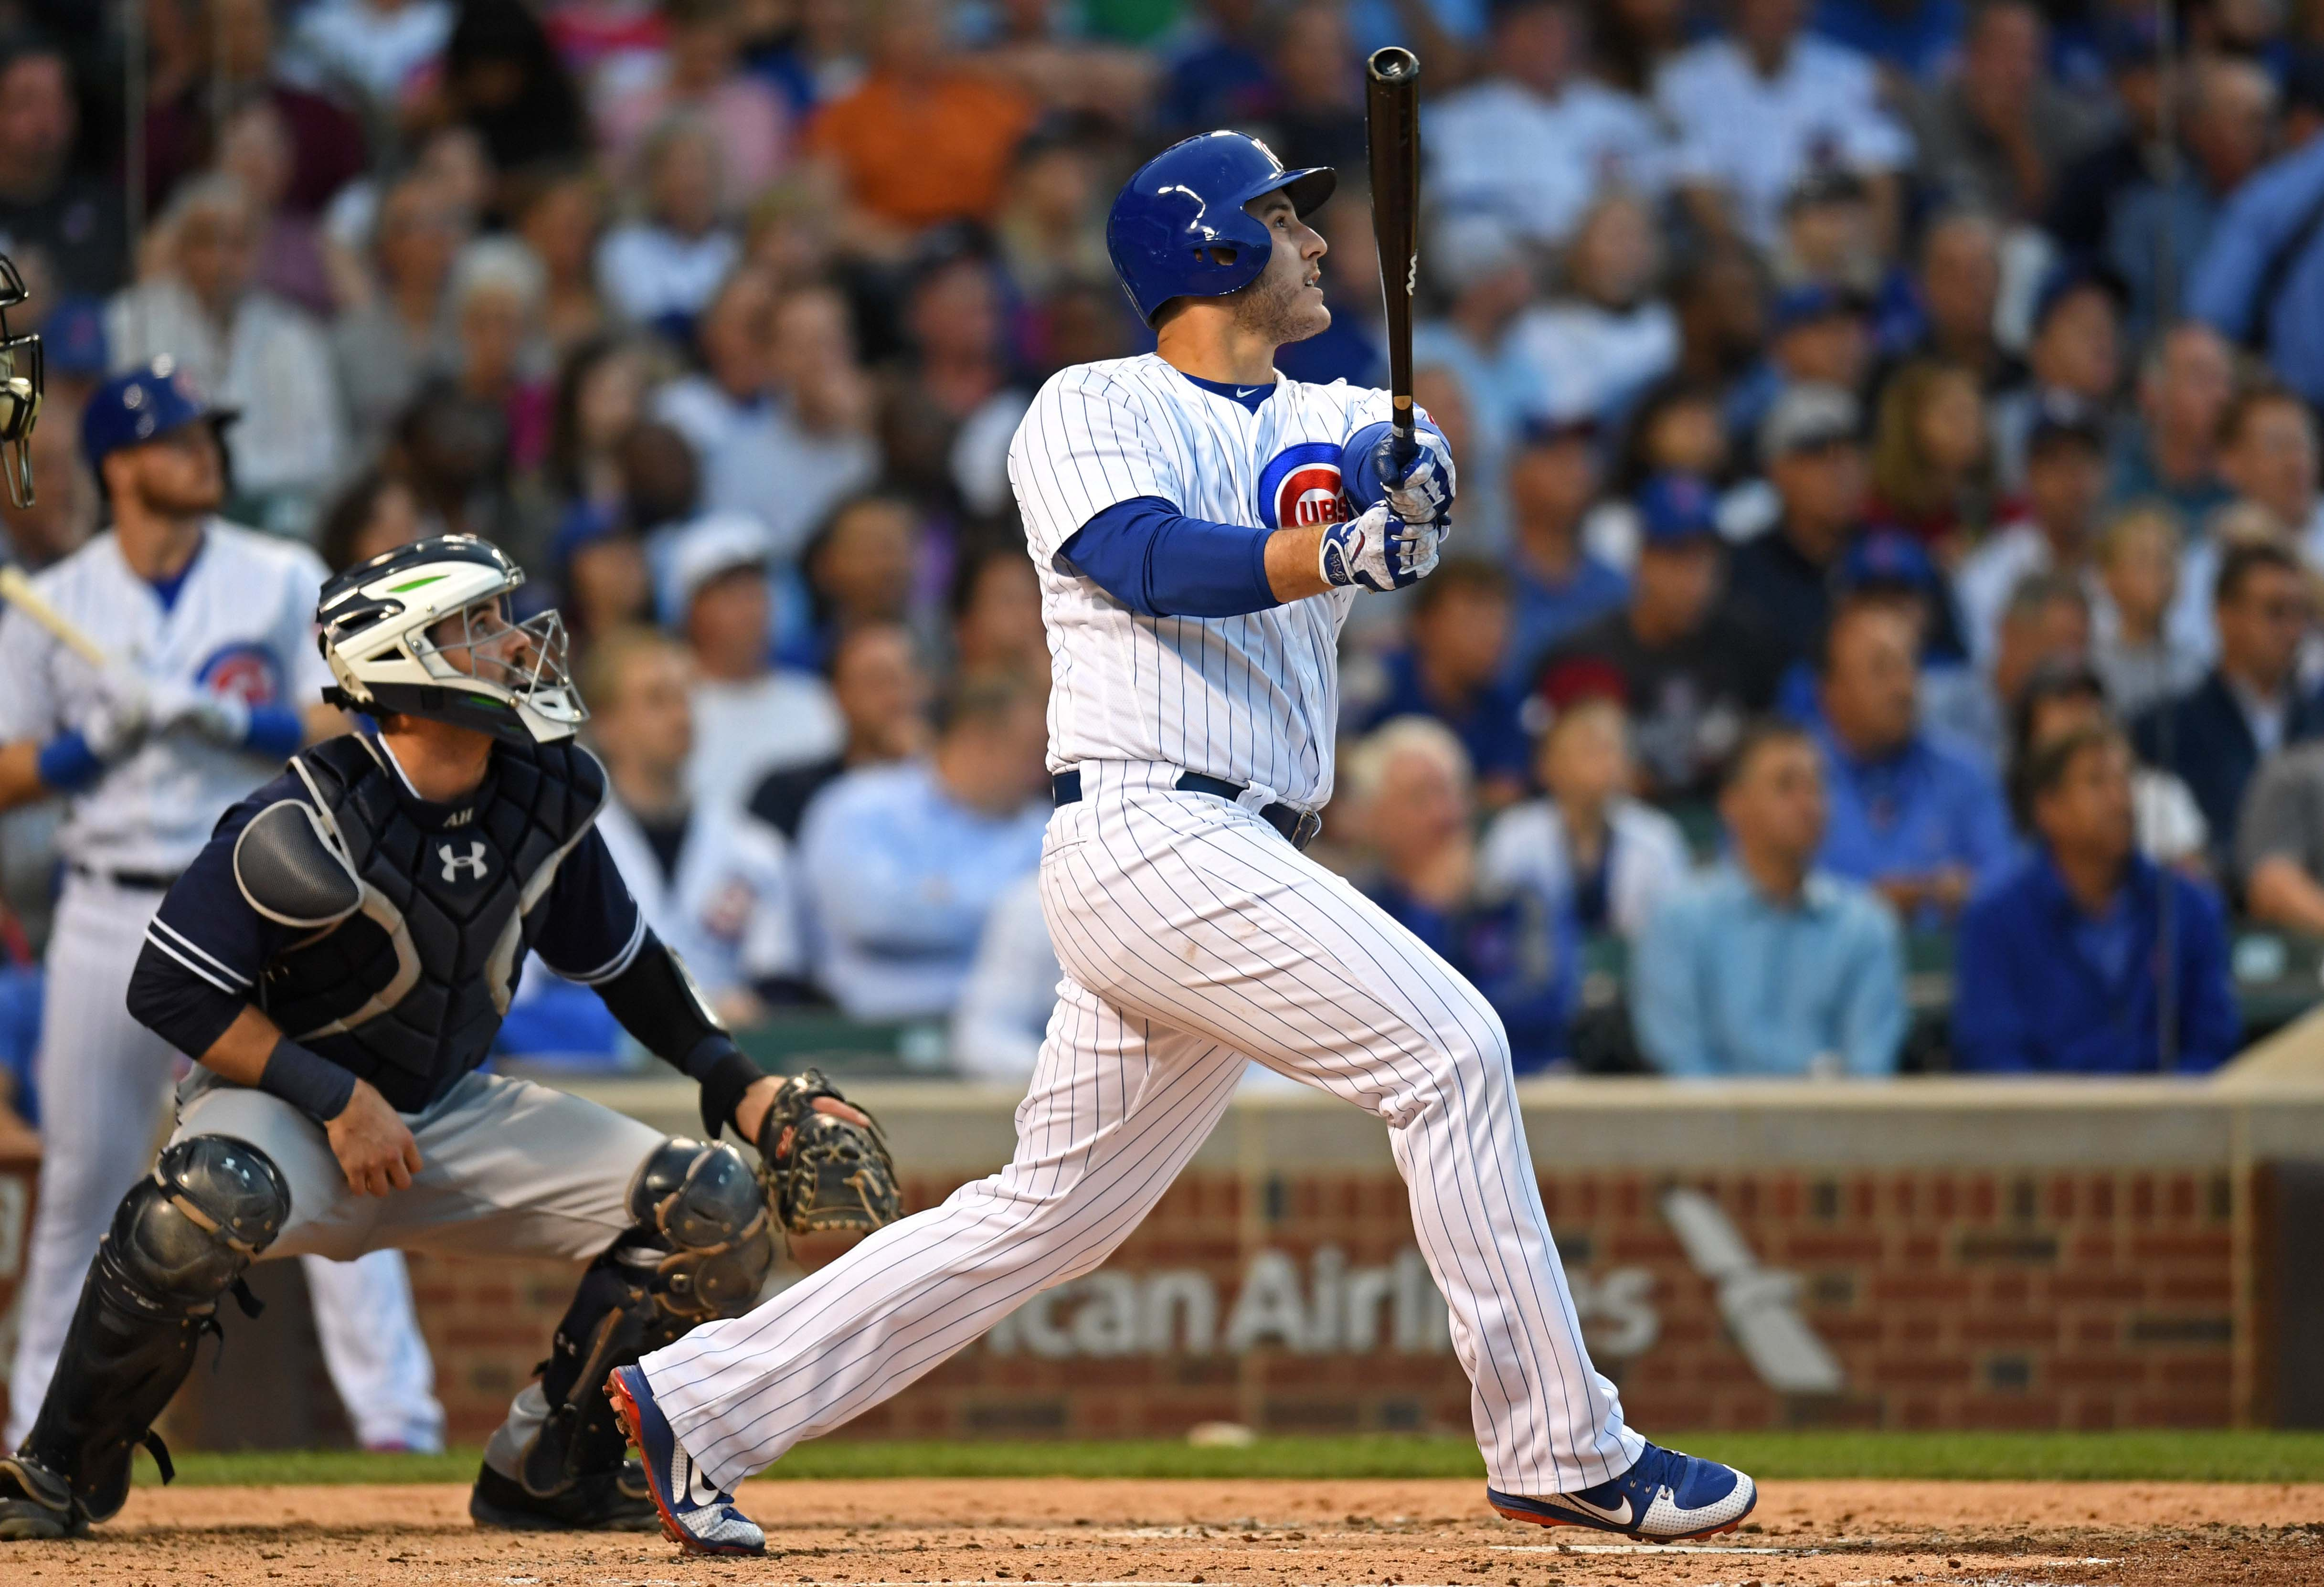 10121580-mlb-san-diego-padres-at-chicago-cubs